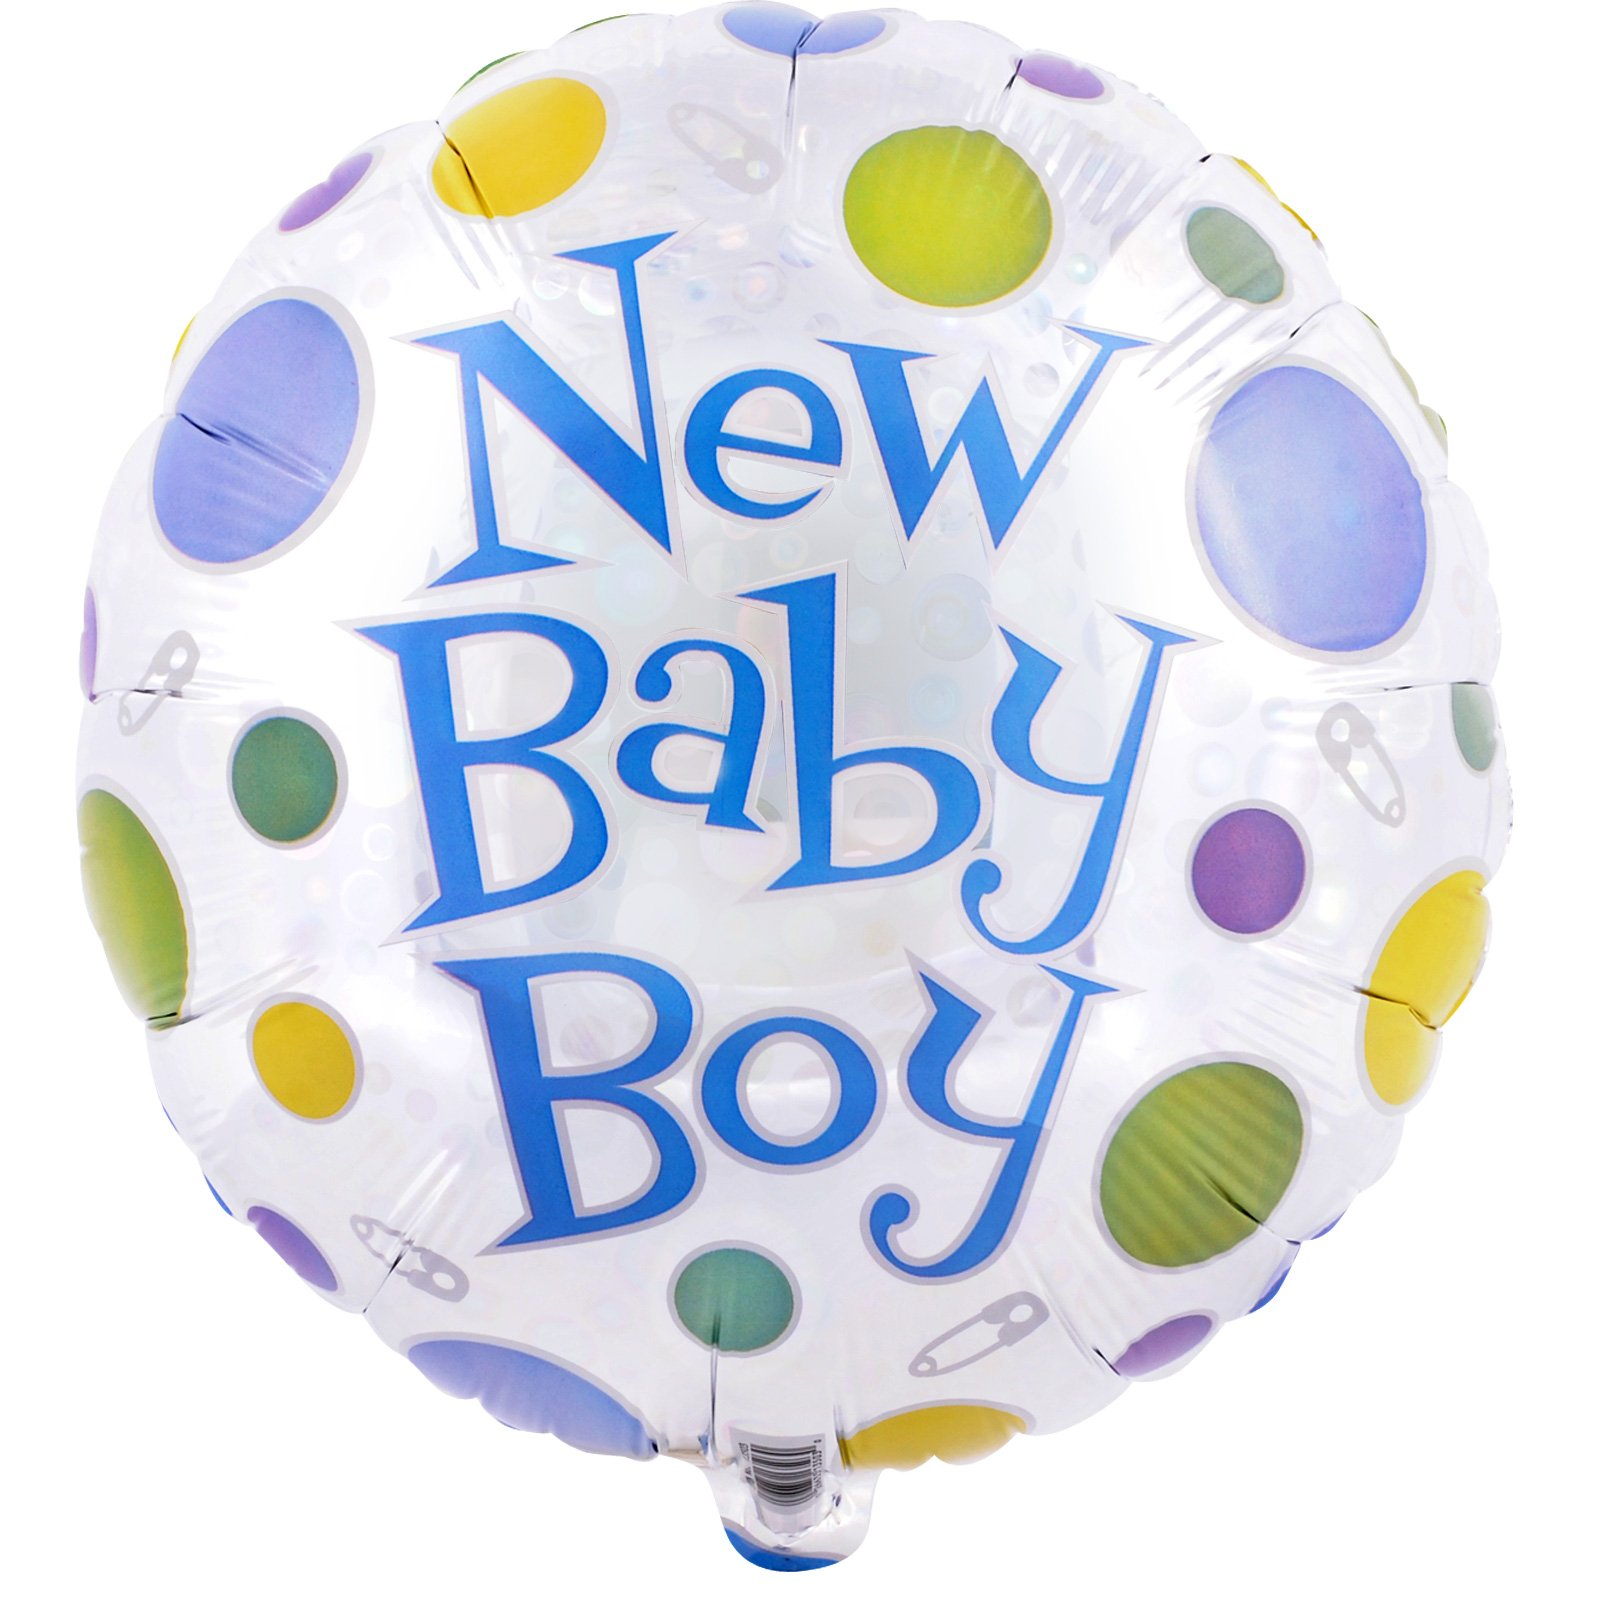 new baby boy born